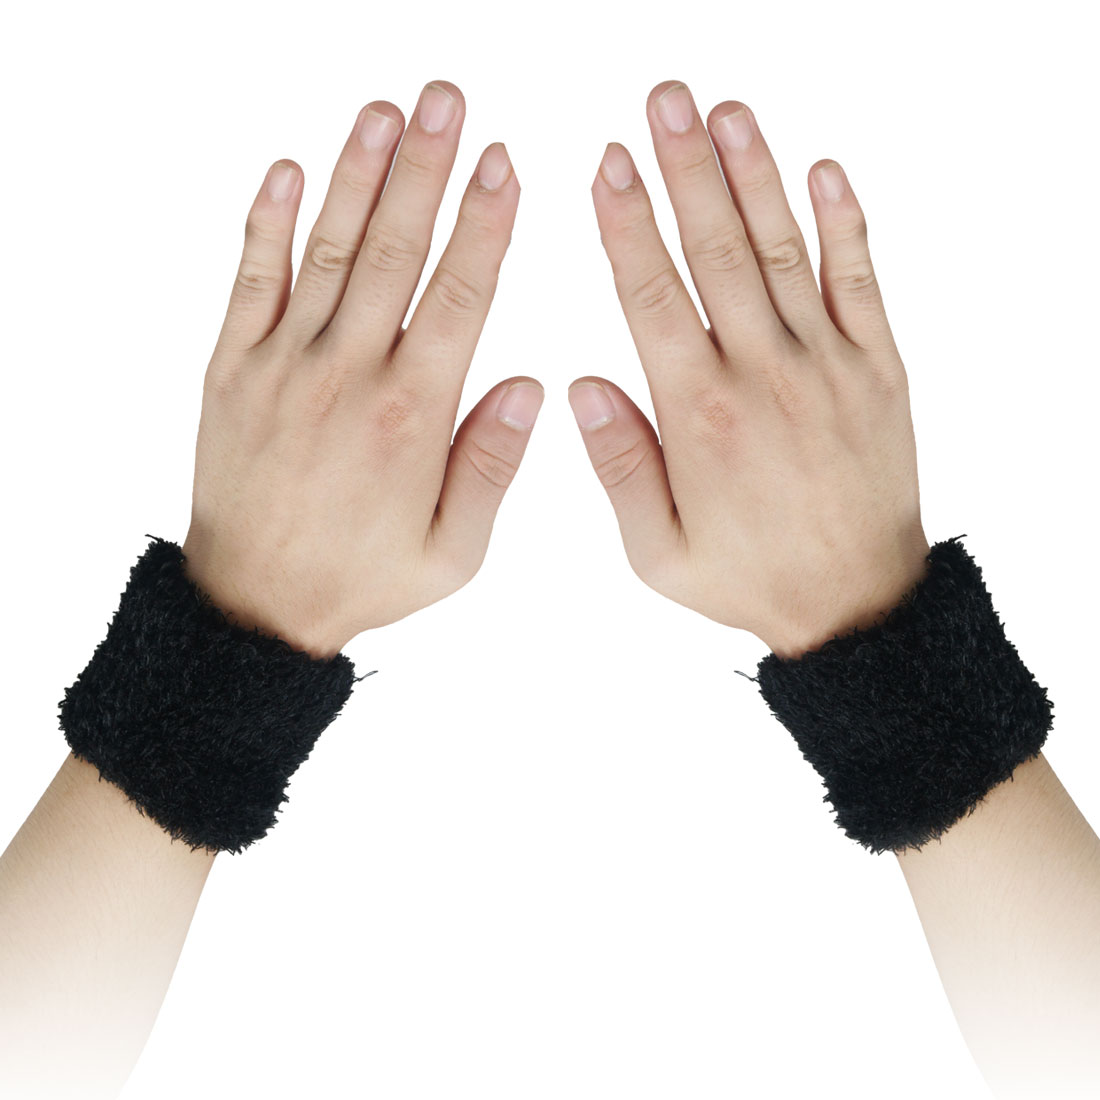 2 Pcs Sports Fitness Terry Spandex Wrist Support Sweatband Straps Black